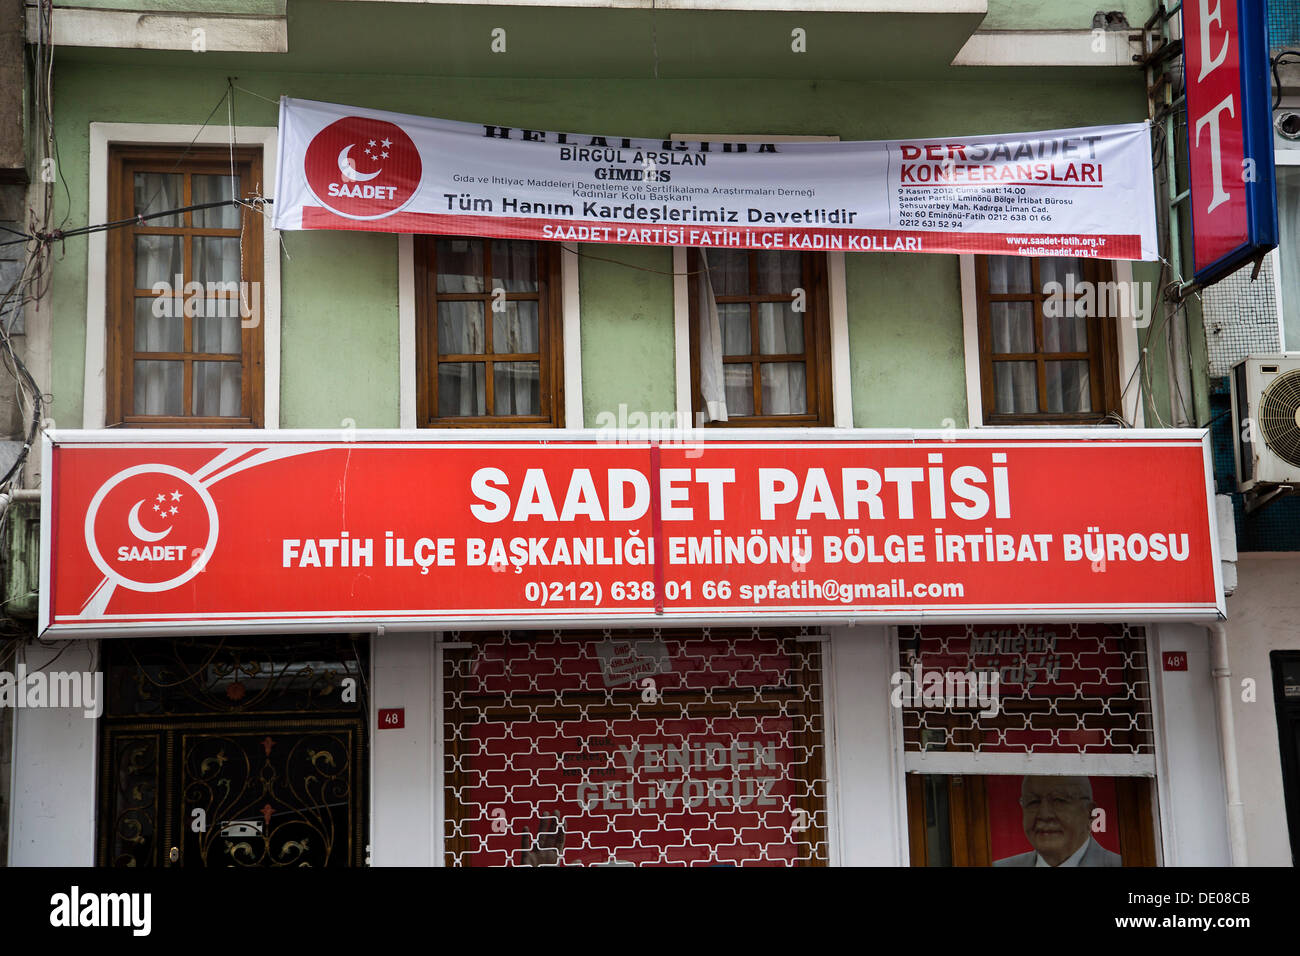 Office of the radical Islamist Saadet Partisi party, Istanbul, Turkey - Stock Image